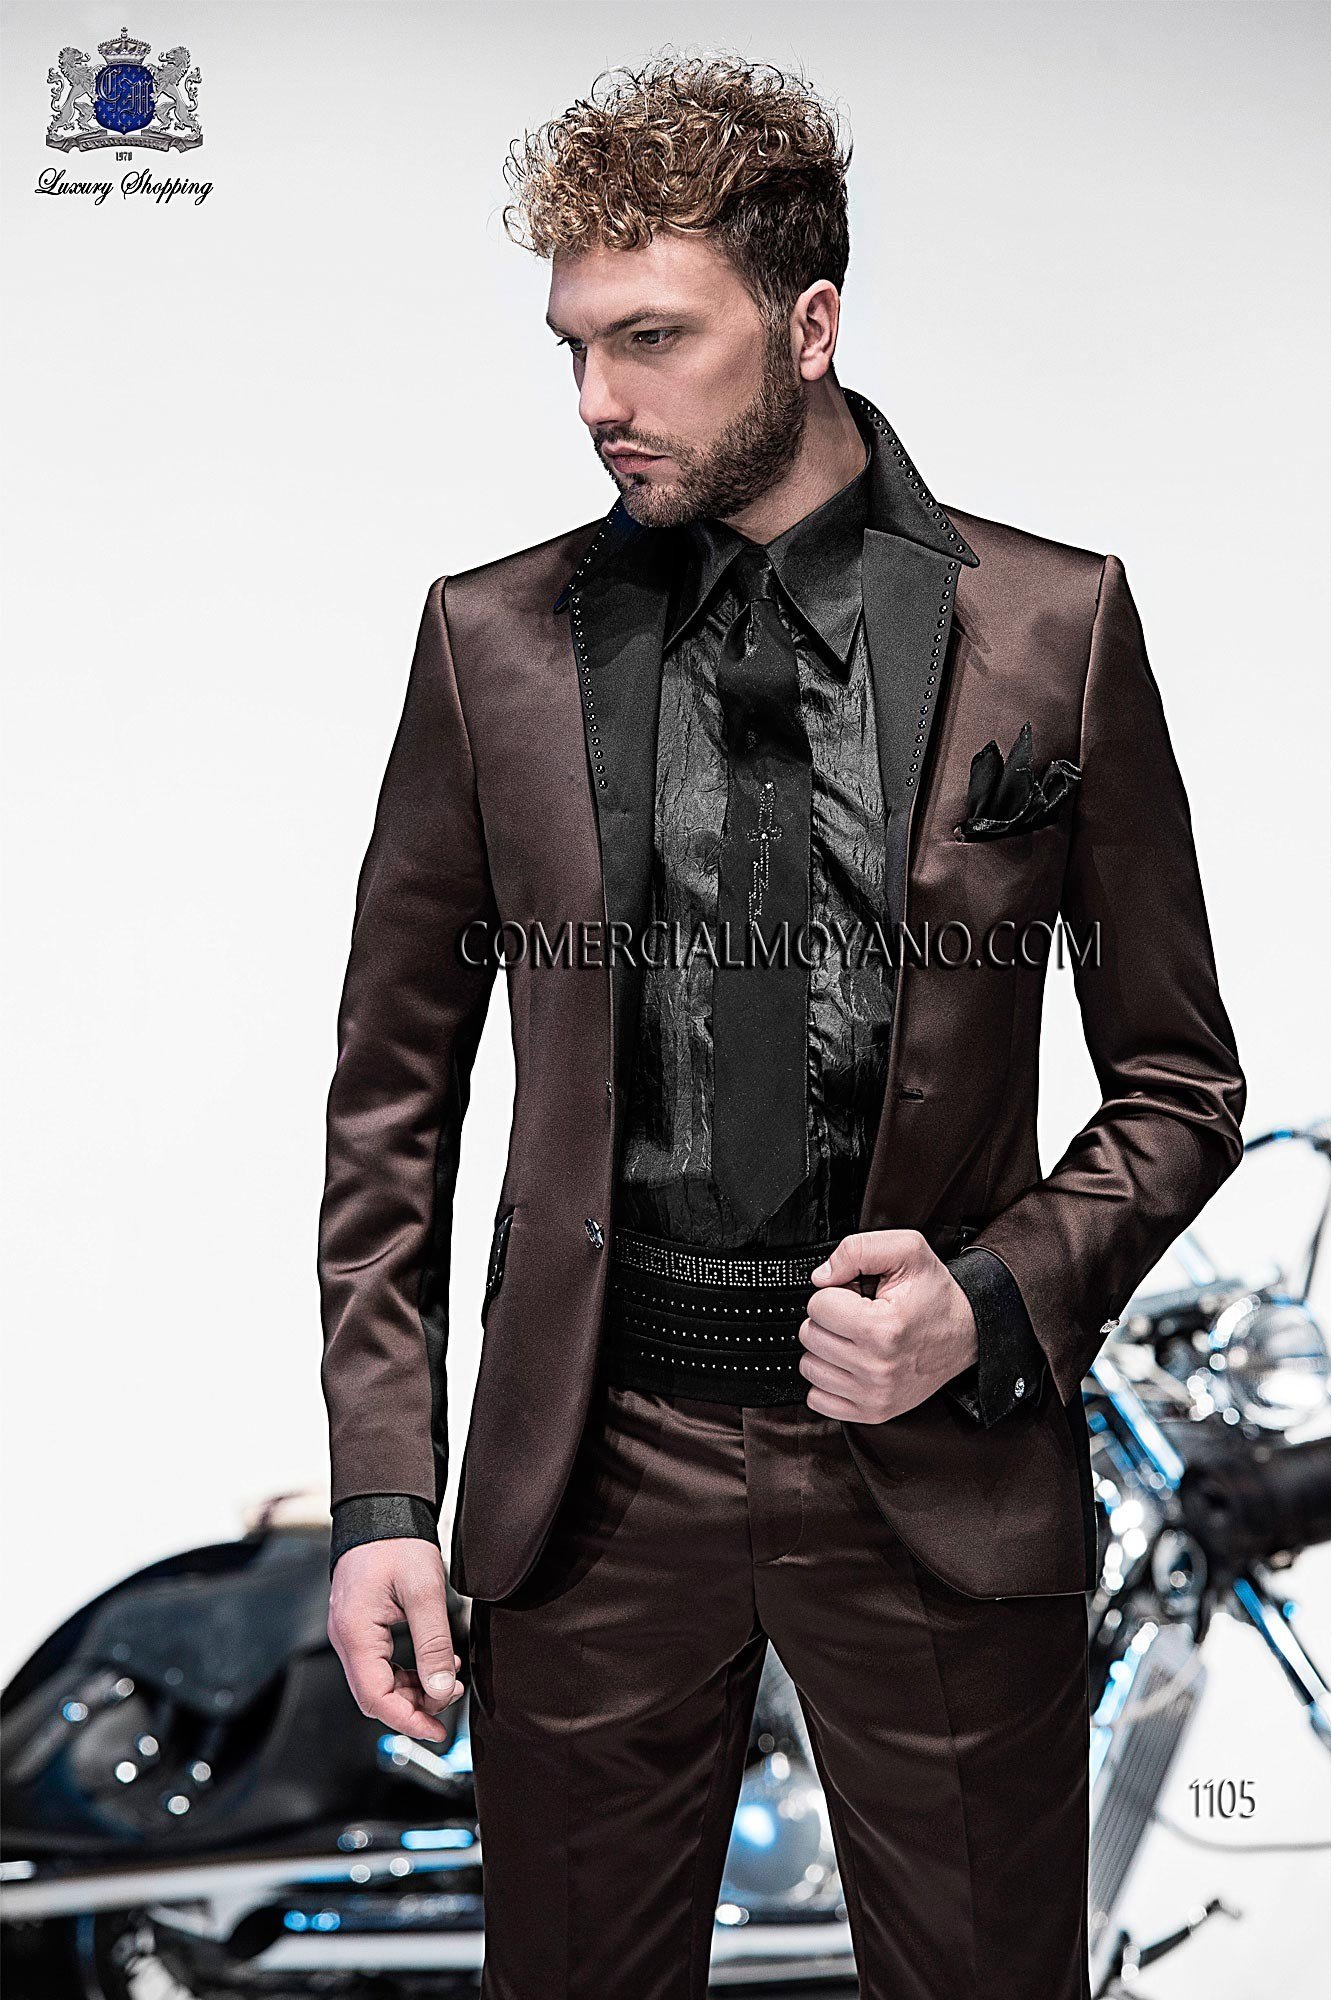 Emotion brown men wedding suit model 1105 Ottavio Nuccio Gala